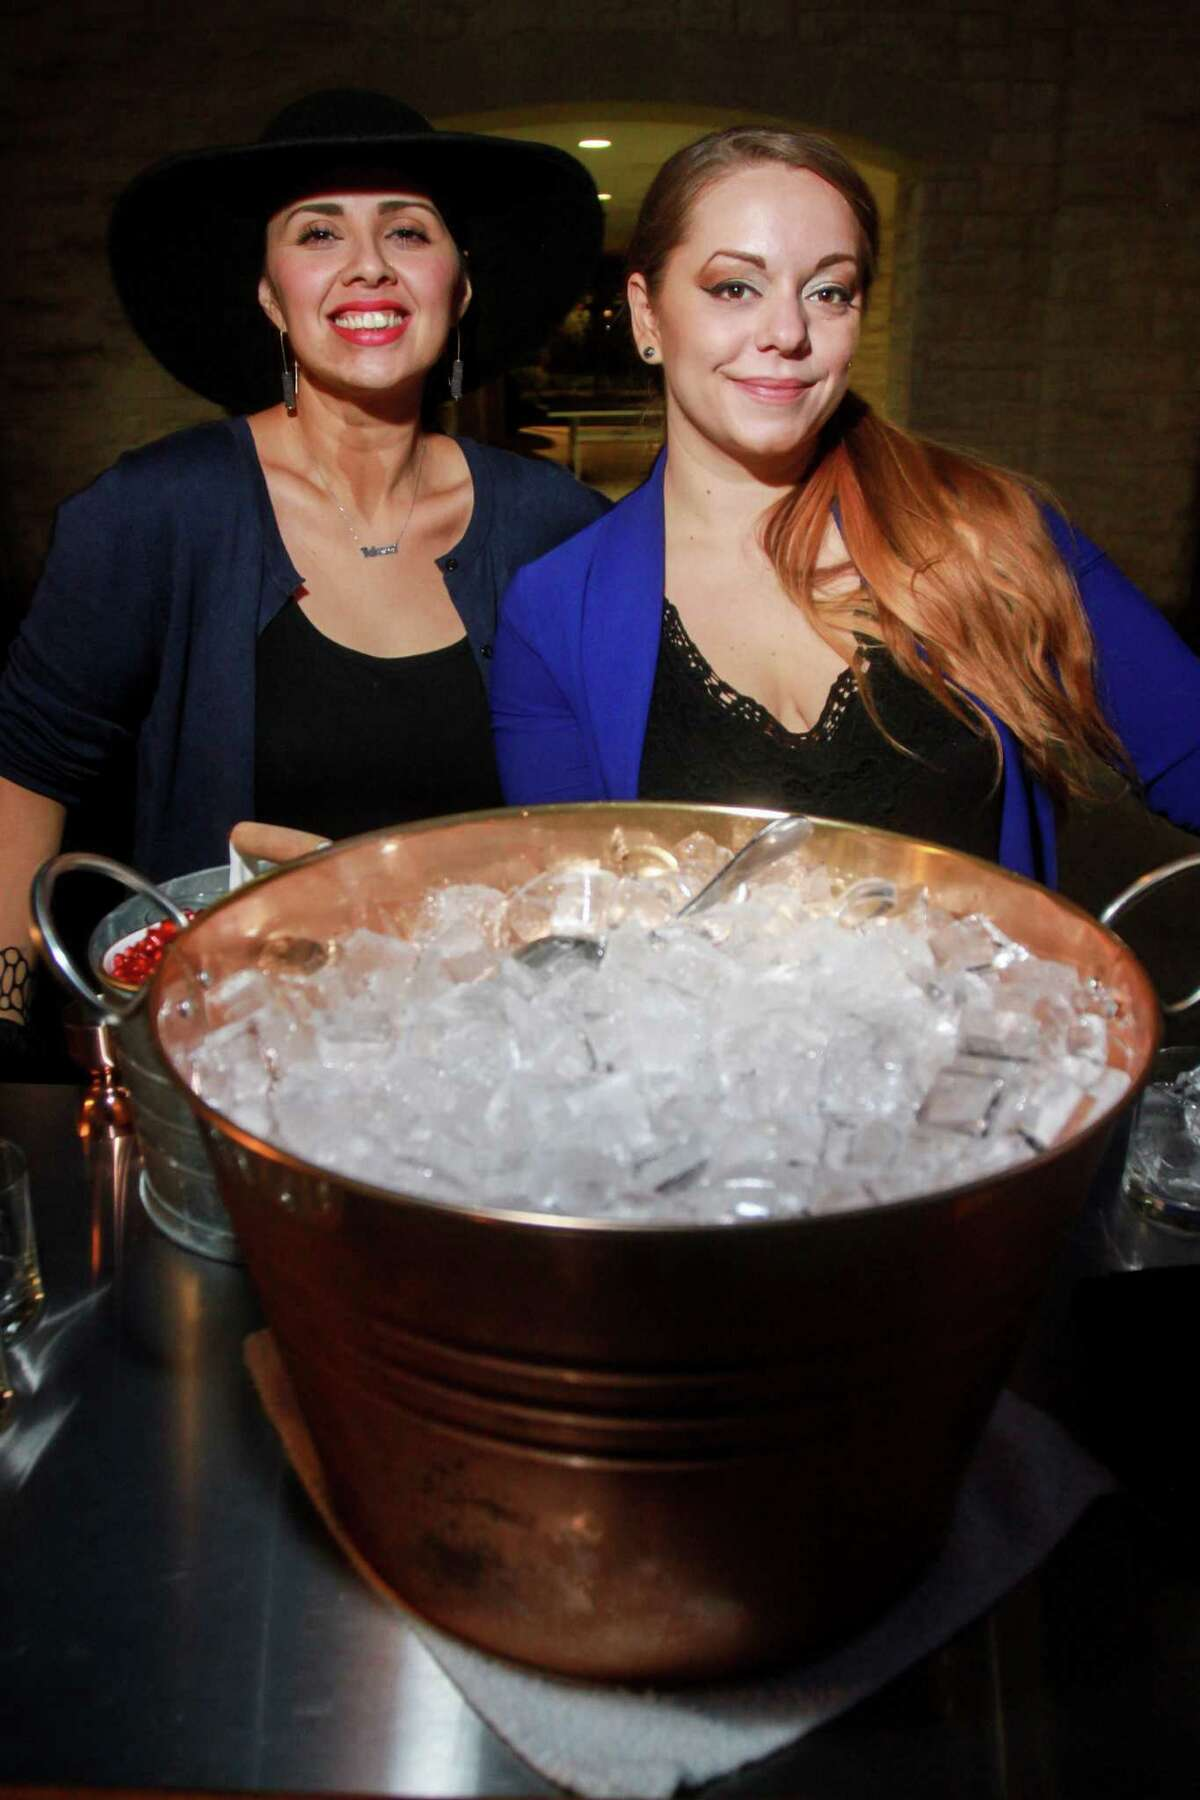 Linda Salinas, left, and Jess Householder as Urban Harvest celebrates its 25th anniversary with five-course meal prepared by 25 celebrity chefs at St. John's School on November 3, 2019.